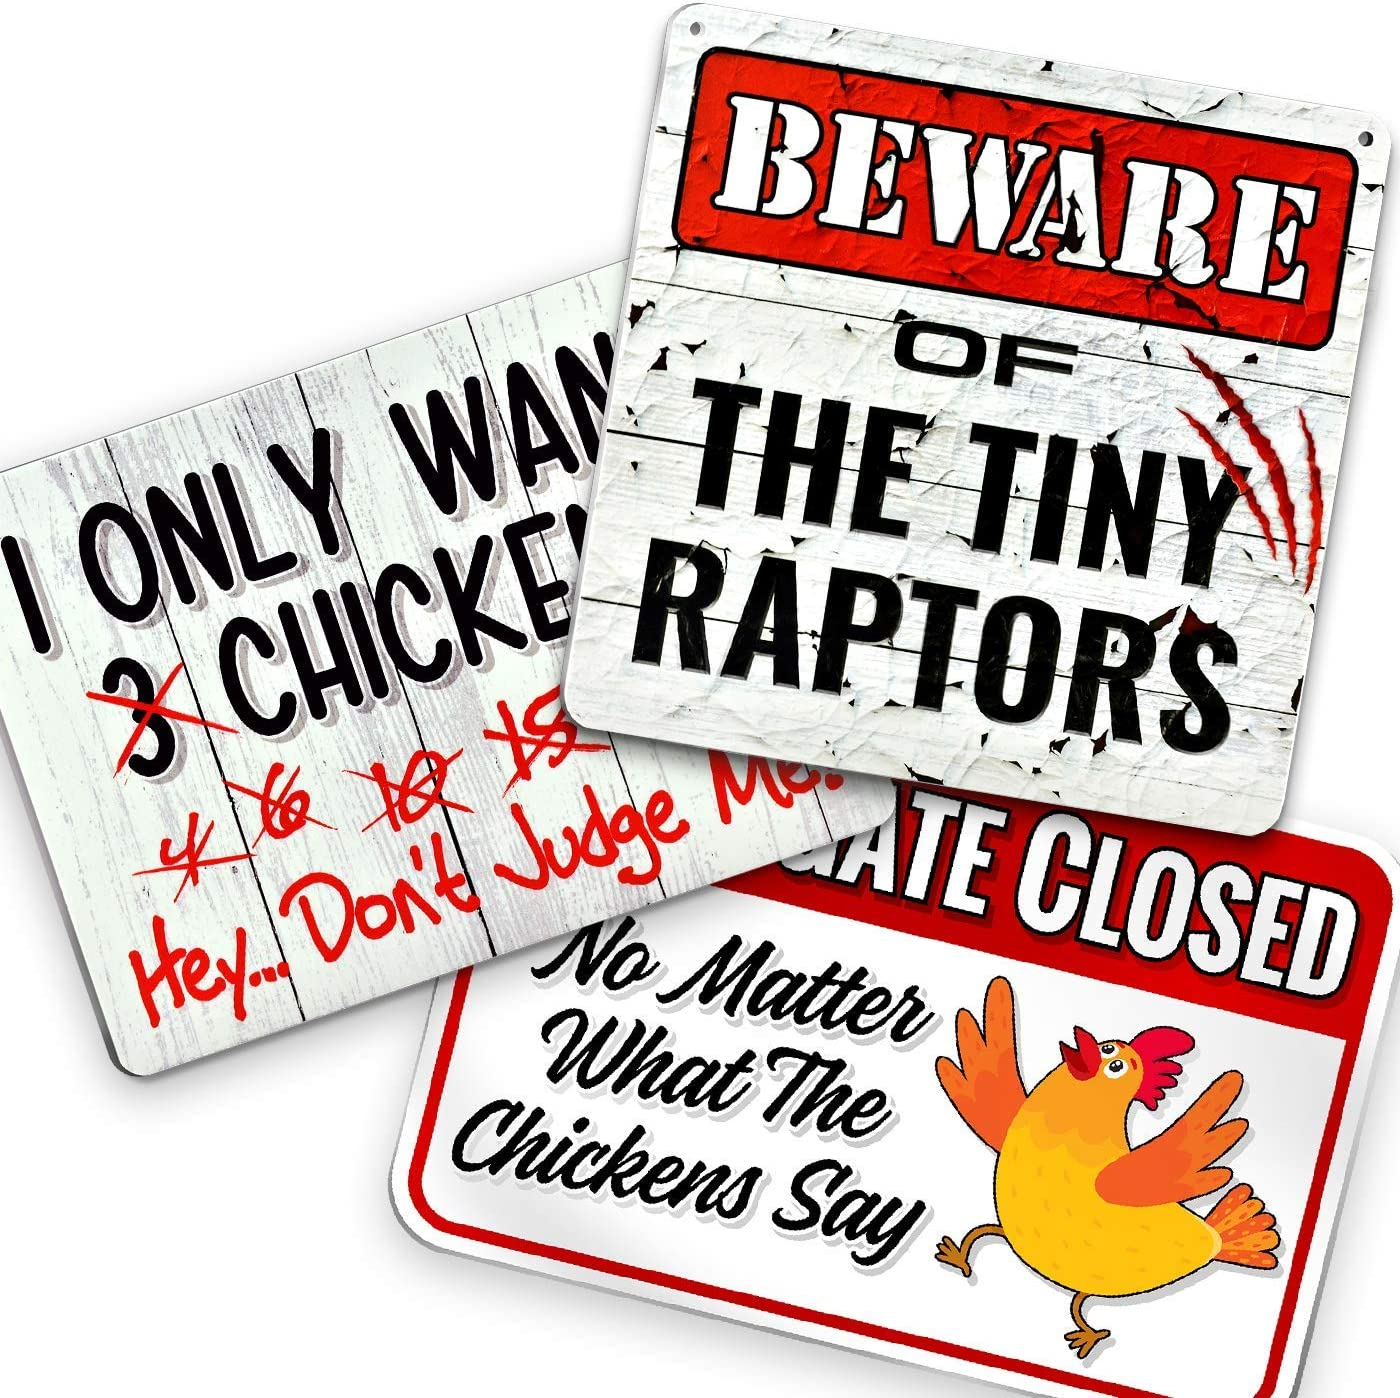 Bigtime Signs 3 Pack Chickens Signs - Funny Coop, Farm, Home, Kitchen, Outdoor, Rooster/ Hen House Decorations - 2 Holes for Easy Hanging, Strong Material - Silly Decor for Poultry Fans